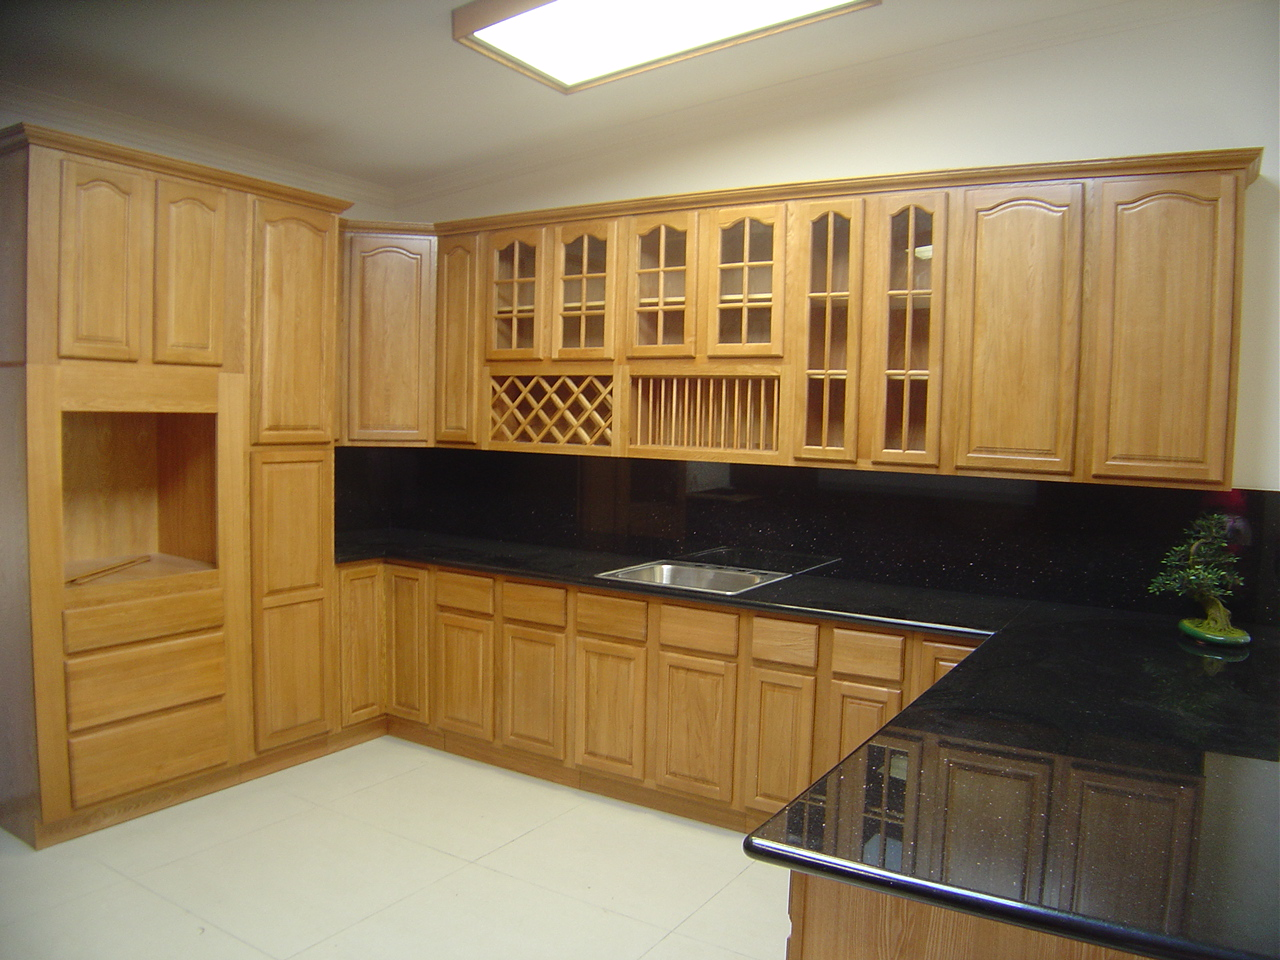 Cheap kitchen cabinets are often available at discount home stores